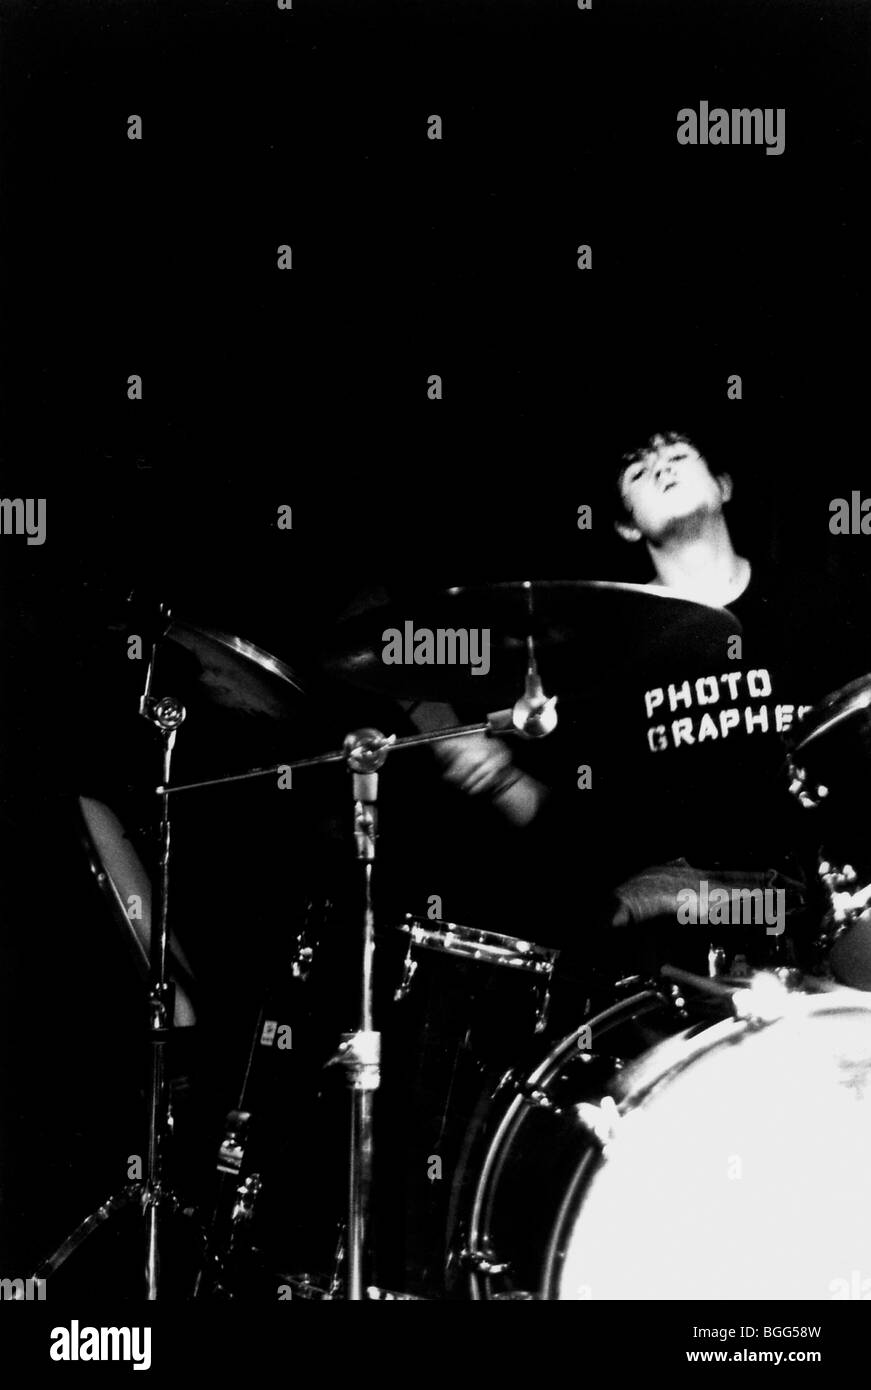 A drummer drumming - Stock Image